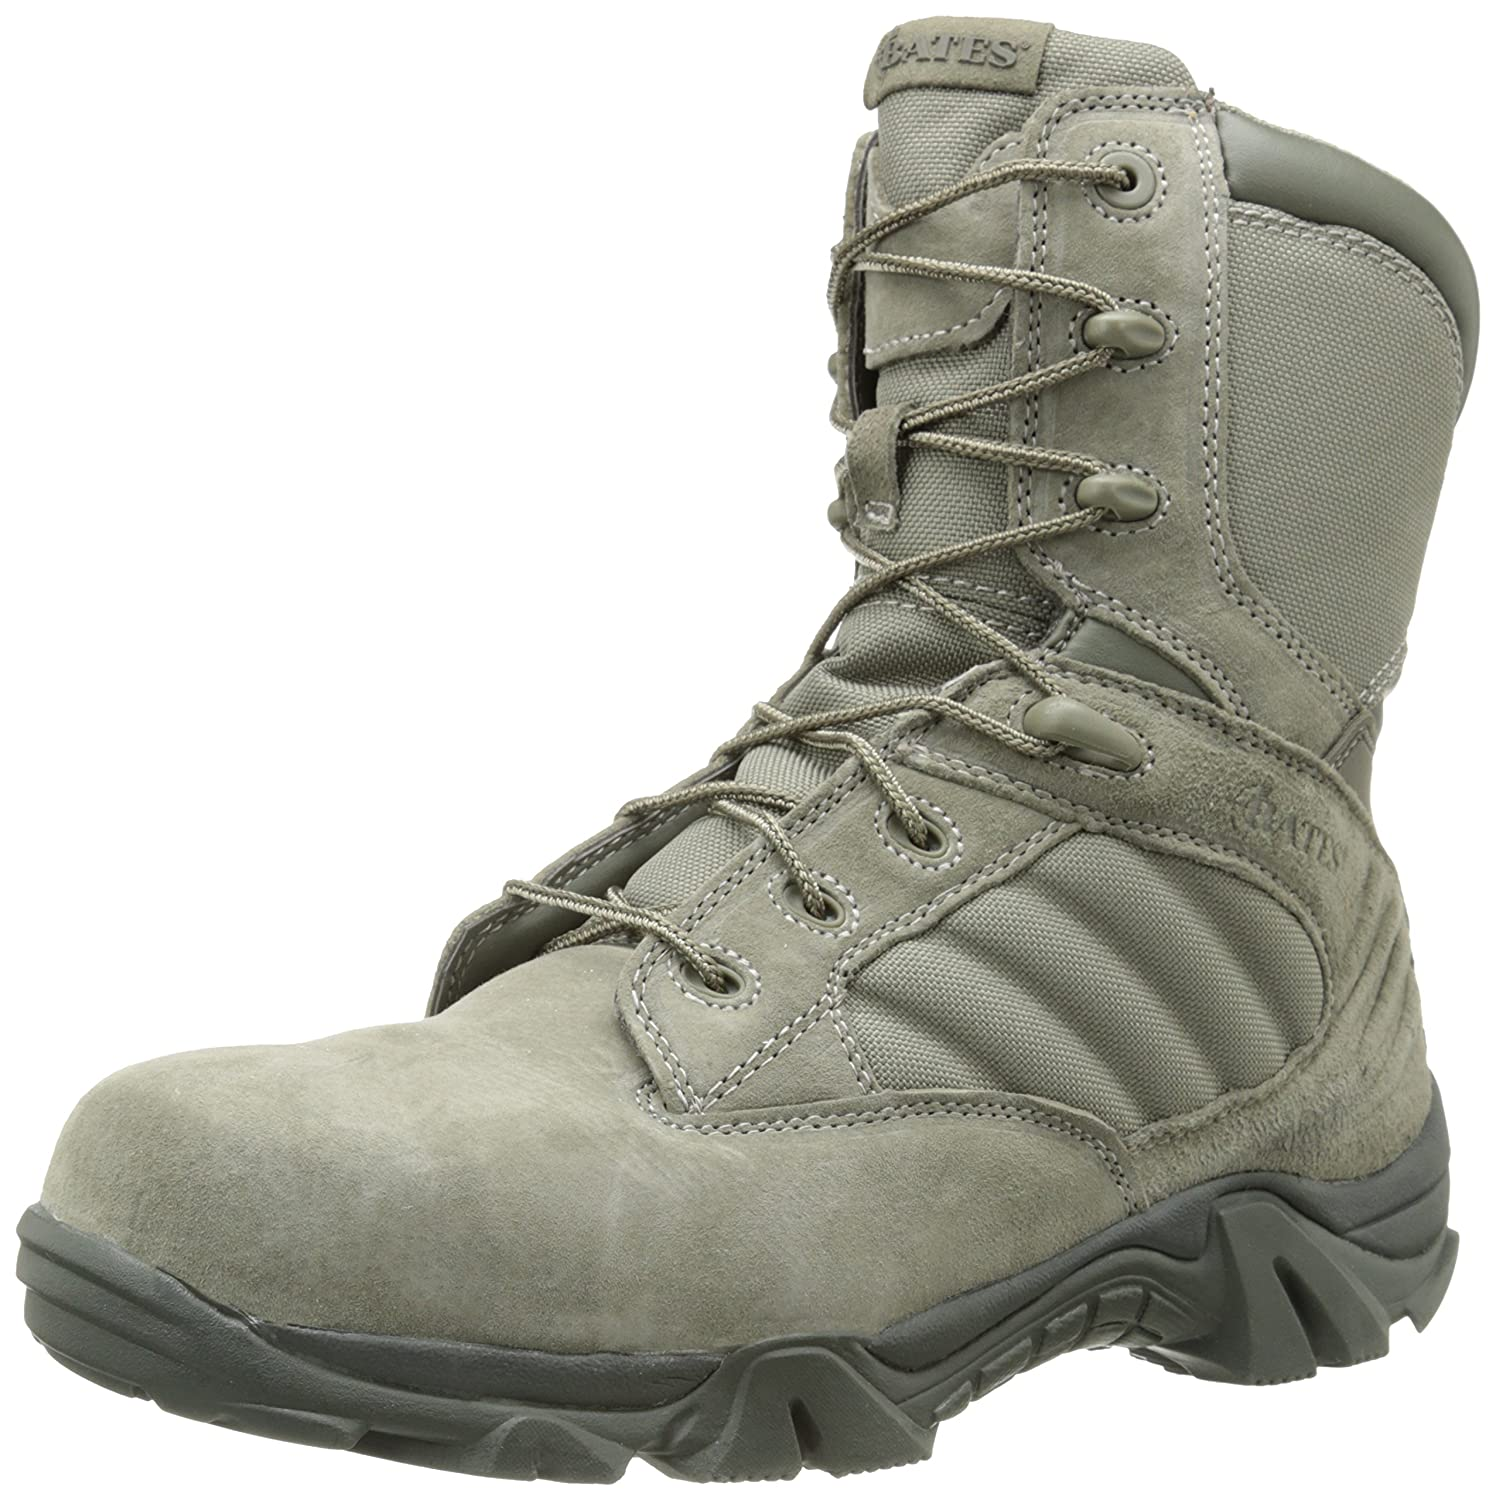 60ecf6c4097 Bates Men's GX-8 Comp Toe Side Zip Work Boot